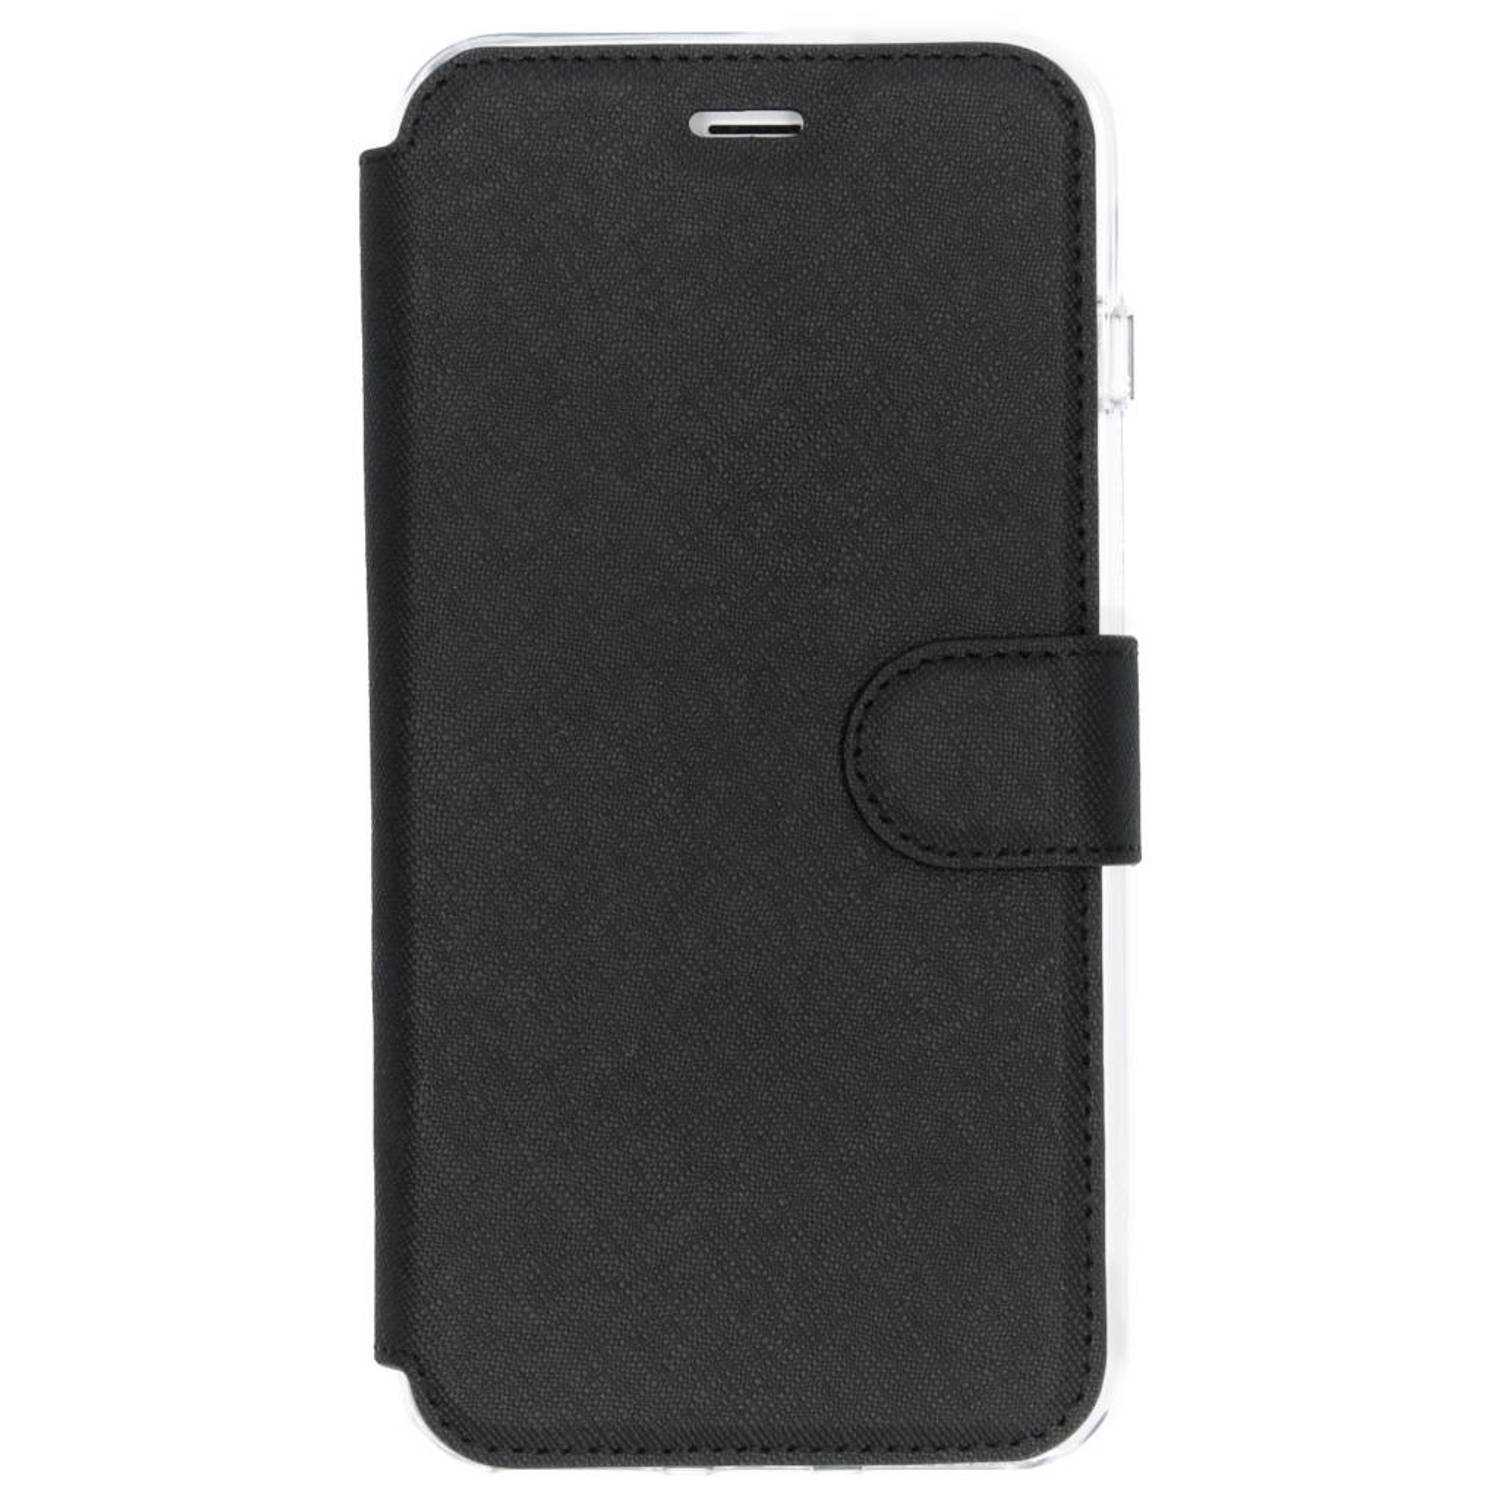 Zwarte Xtreme Wallet voor de iPhone 8 Plus / 7 Plus